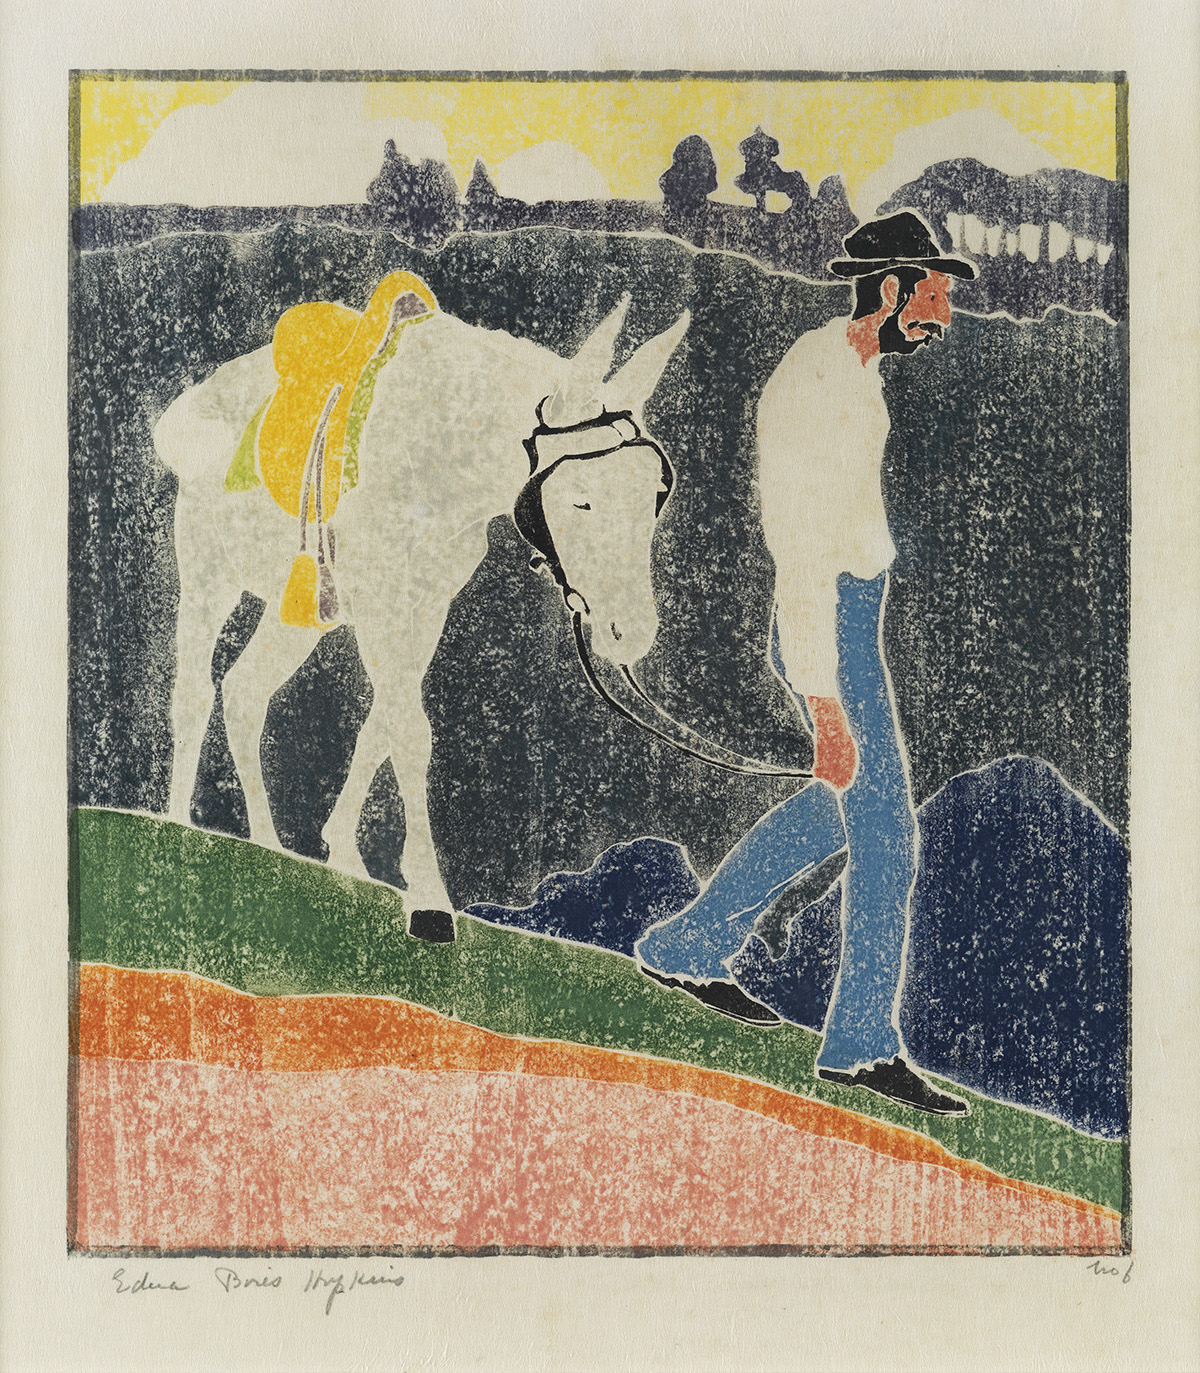 EDNA-BOIES-HOPKINS-The-Mountaineer-(Andy-Walking-with-his-Mule)